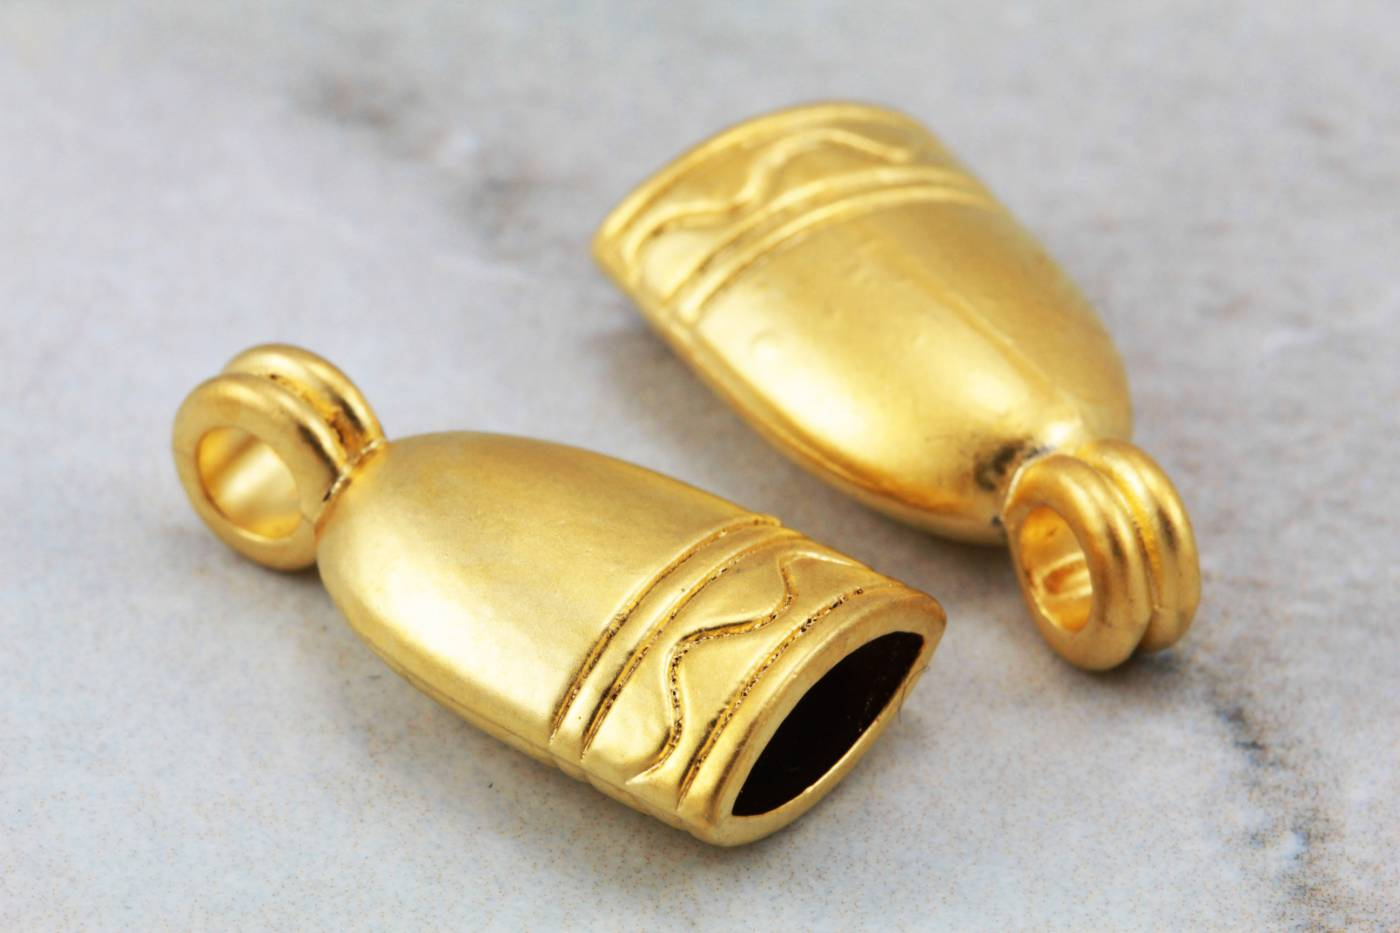 gold-metal-oval-end-cap-findings.jpg